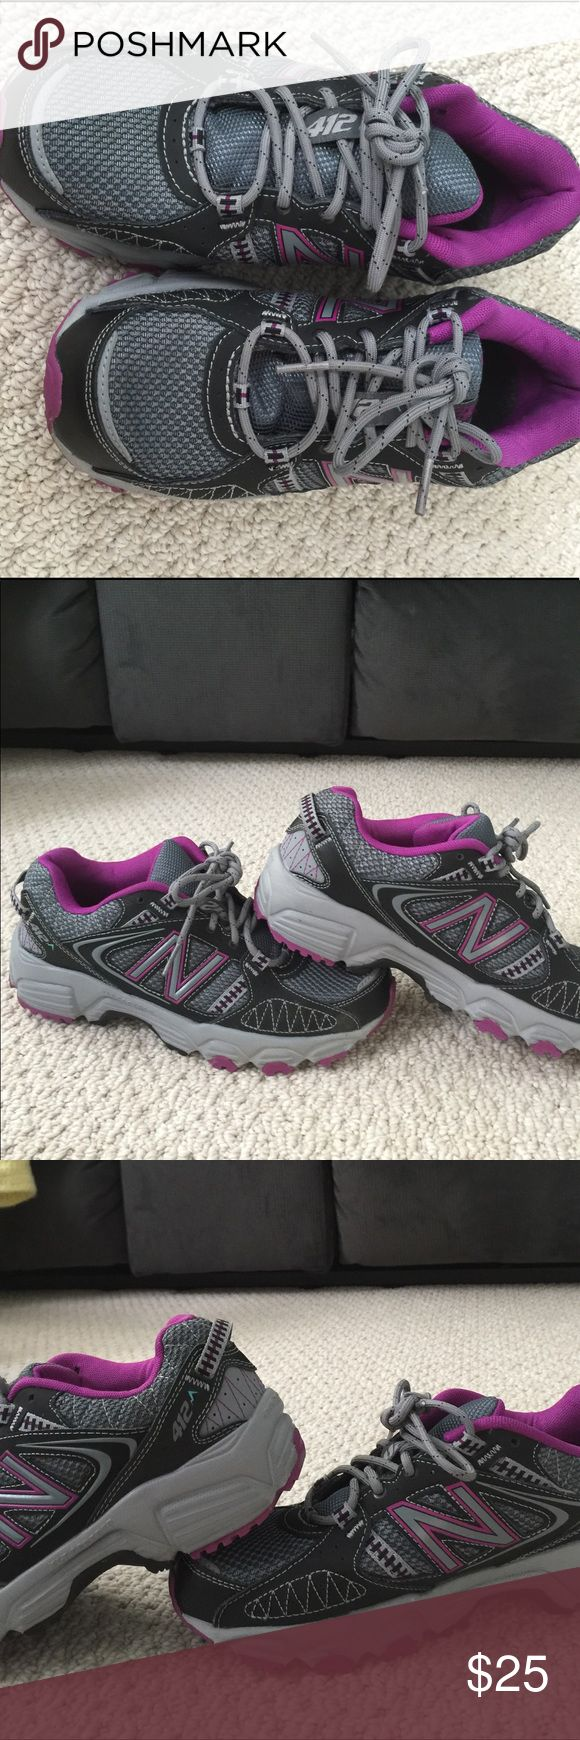 Women's New Balance athletic shoes size 7 wide New Balance 412 Wide Trail Running Shoes - Women Size: 7 WIDE Color: Charcoal Purple New Balance Shoes Sneakers